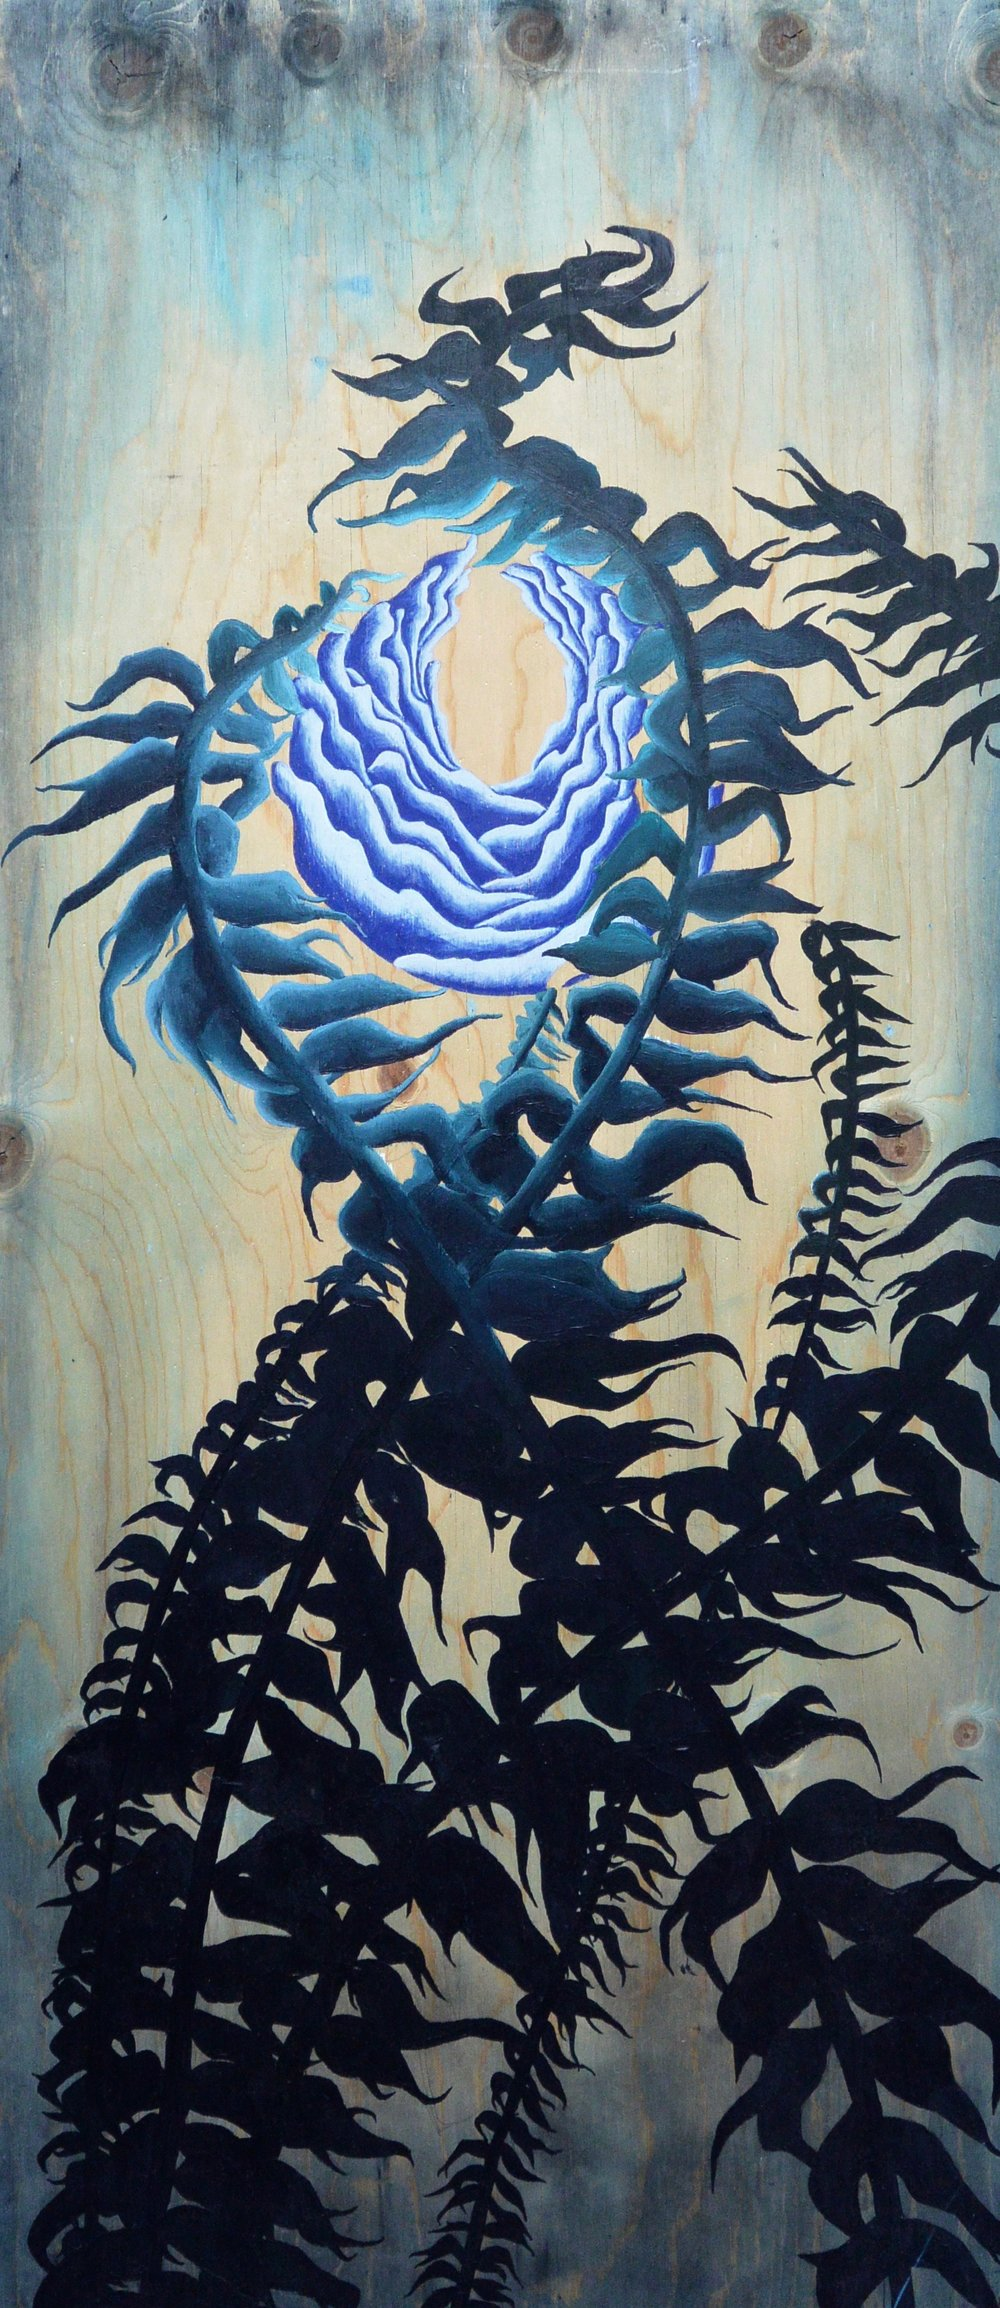 Grandmother , 2015. Acrylic on wood. 42 x 18 in.